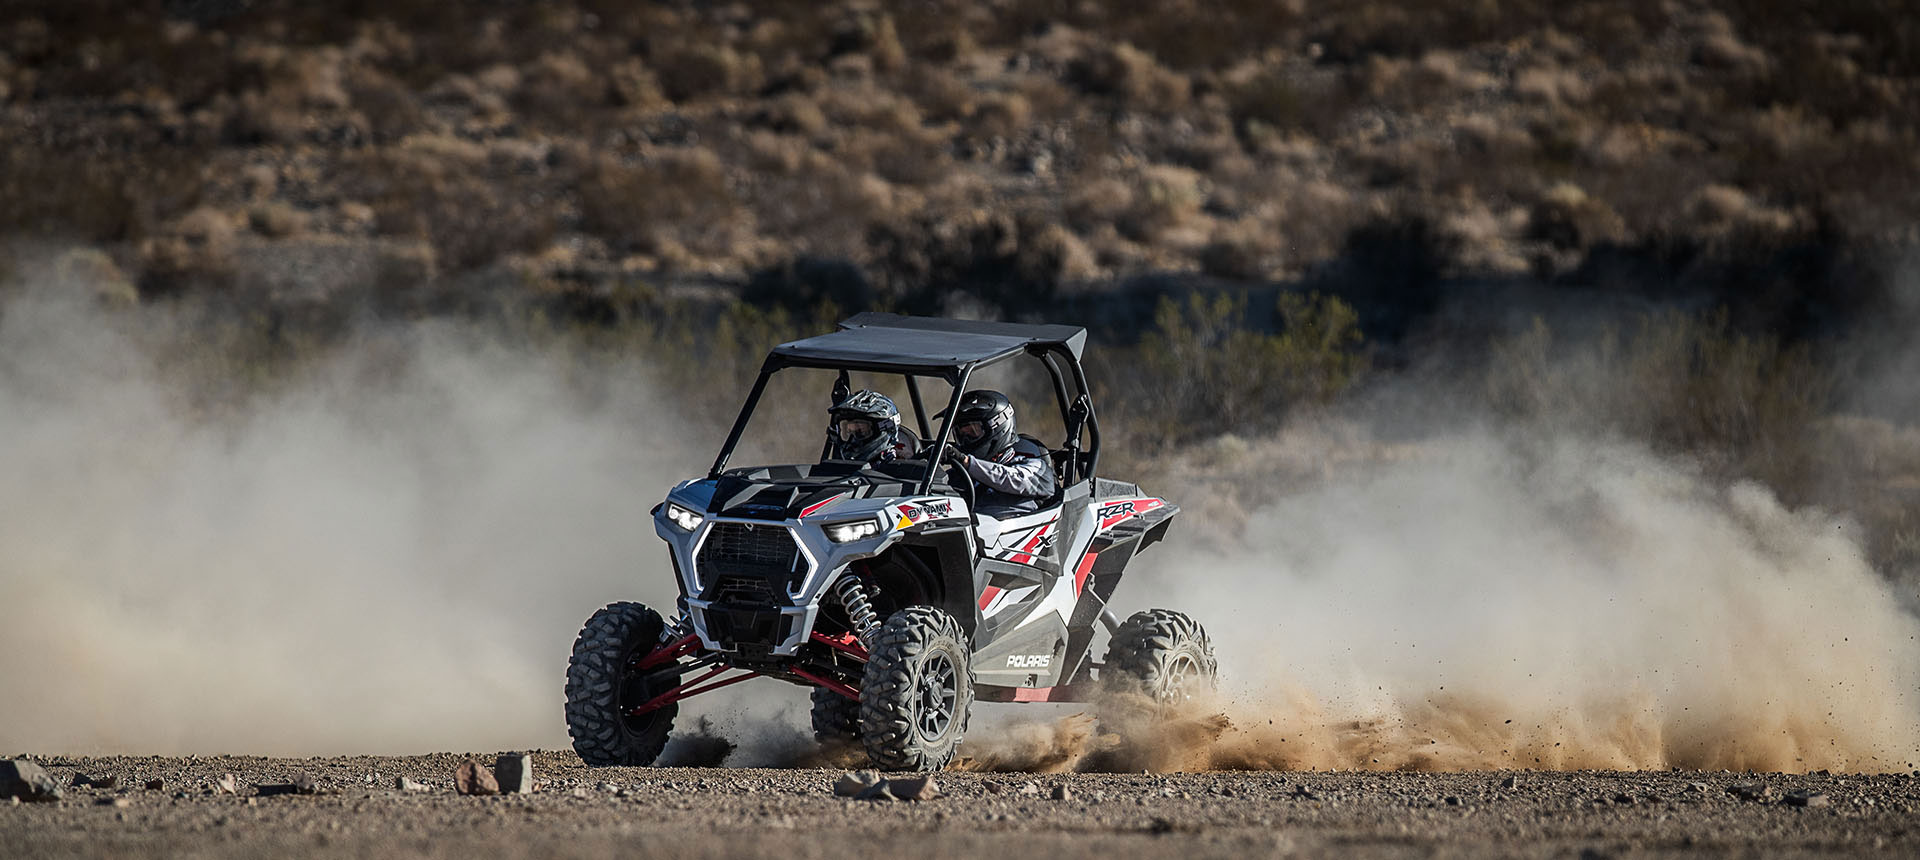 2019 Polaris RZR XP 1000 in Afton, Oklahoma - Photo 7